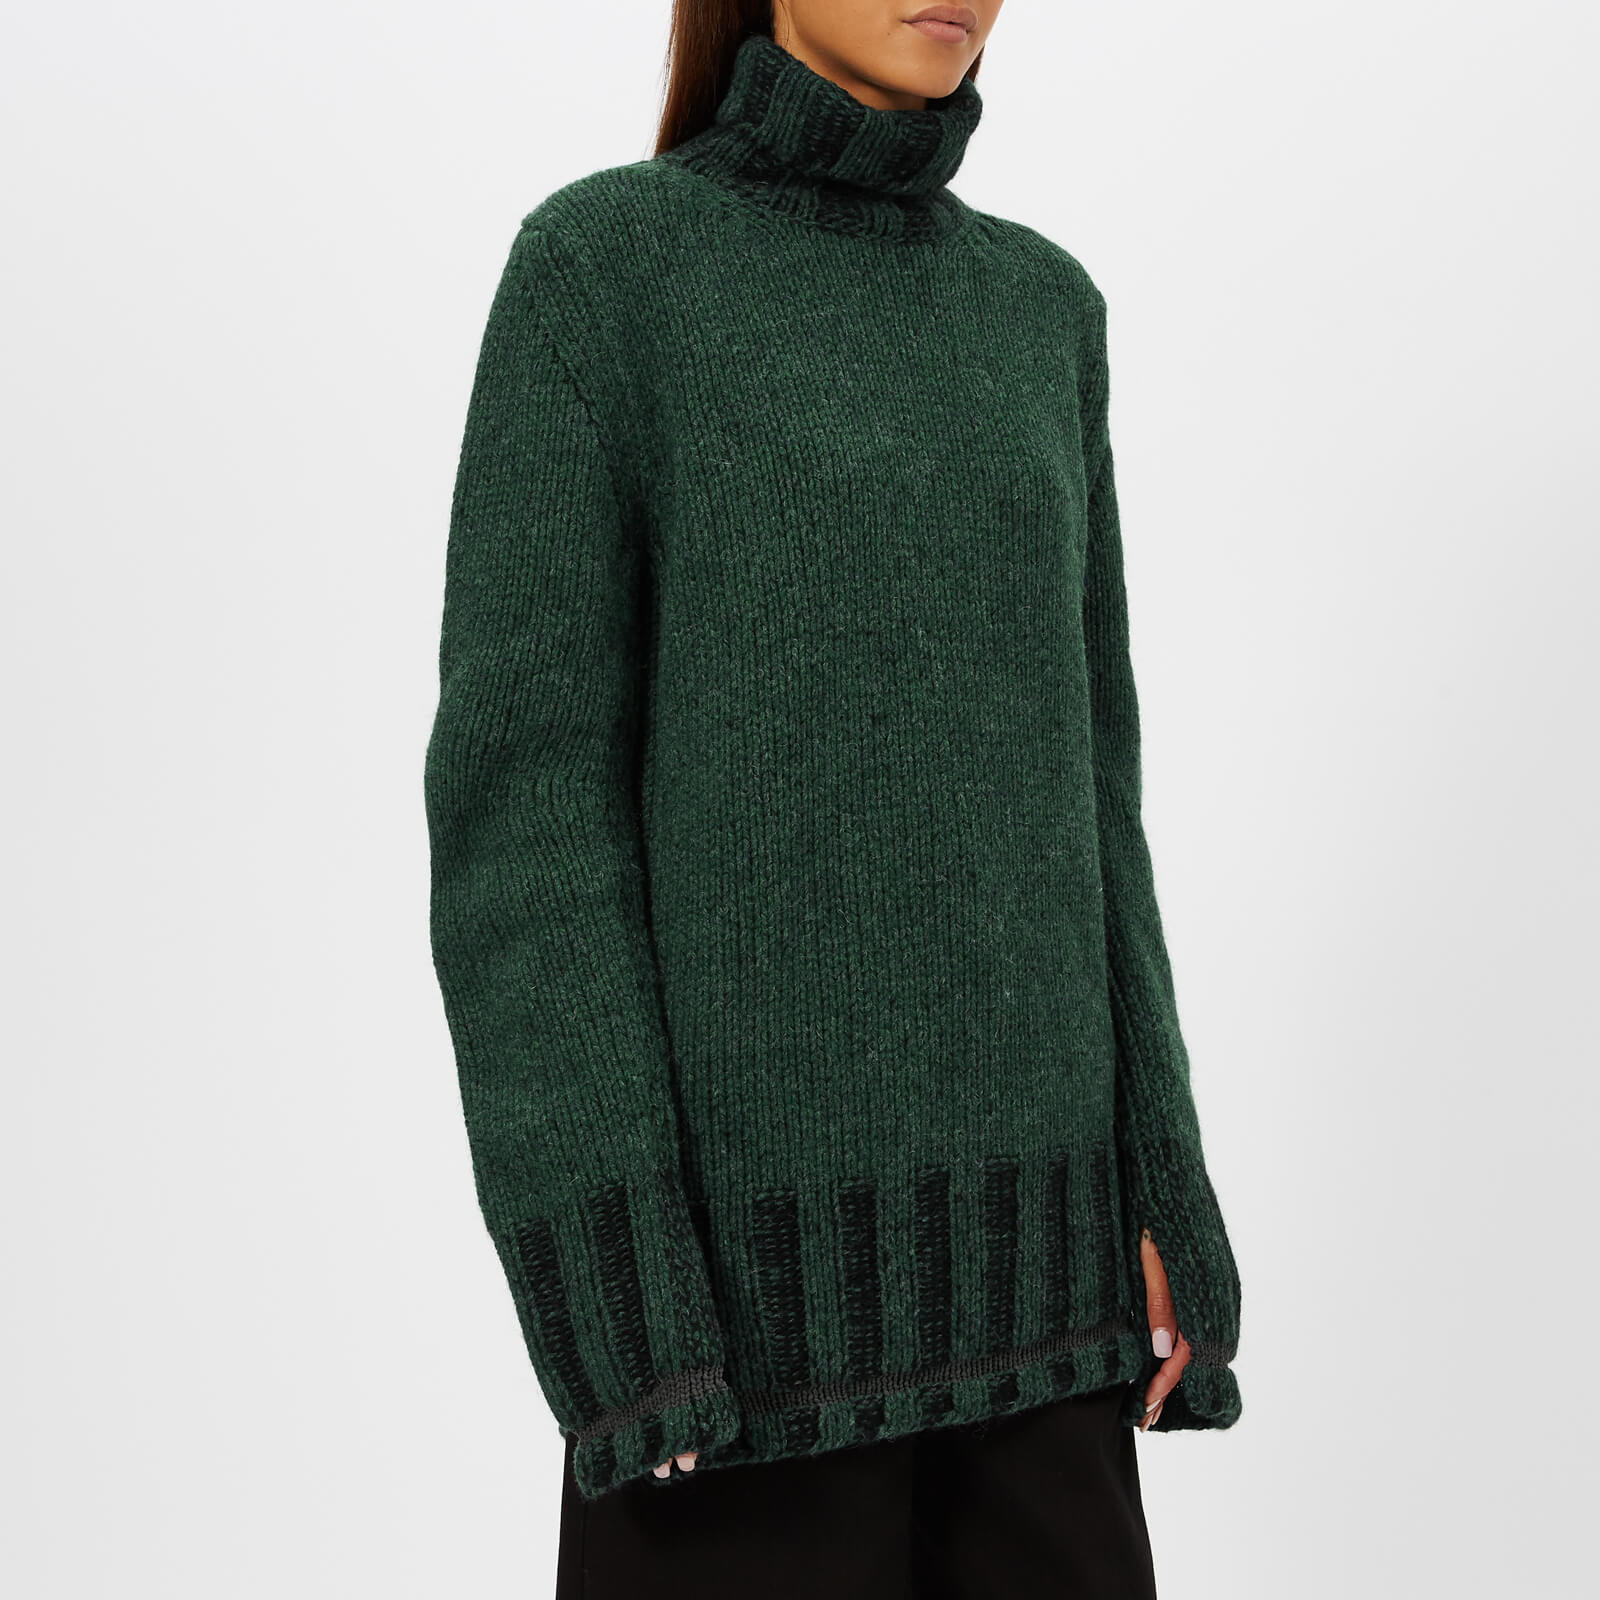 348f51b2053f23 MM6 Maison Margiela Women's Polo Neck Knitted Jumper - Green/Black - Free  UK Delivery over £50